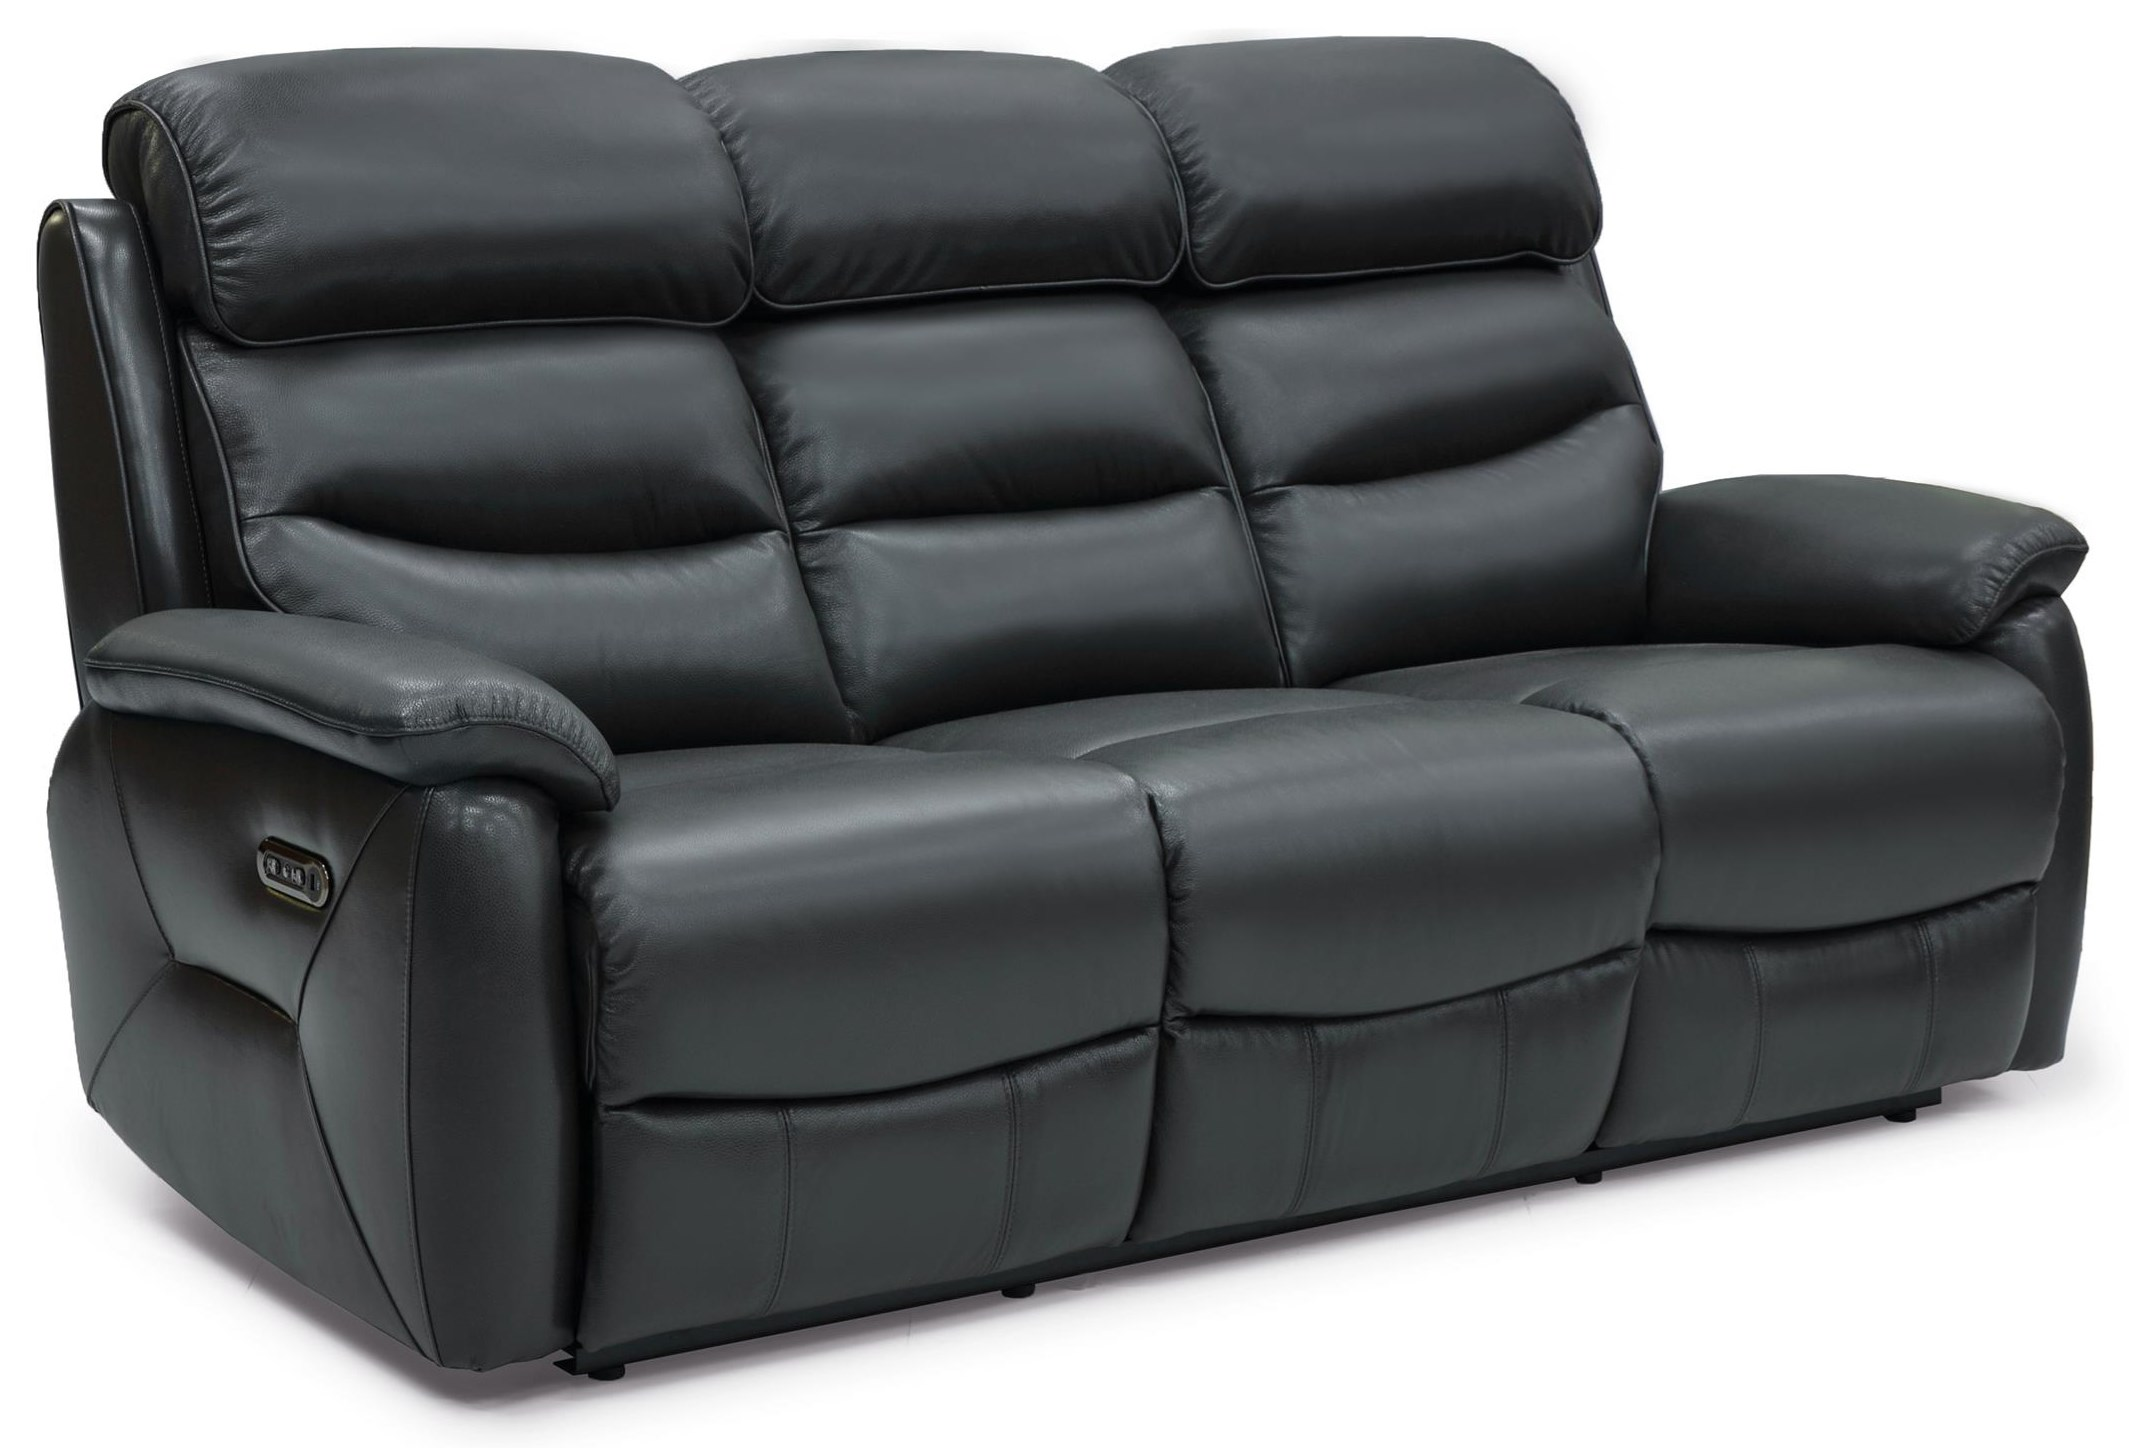 Lucie Power Reclining Leather Sofa at Rotmans